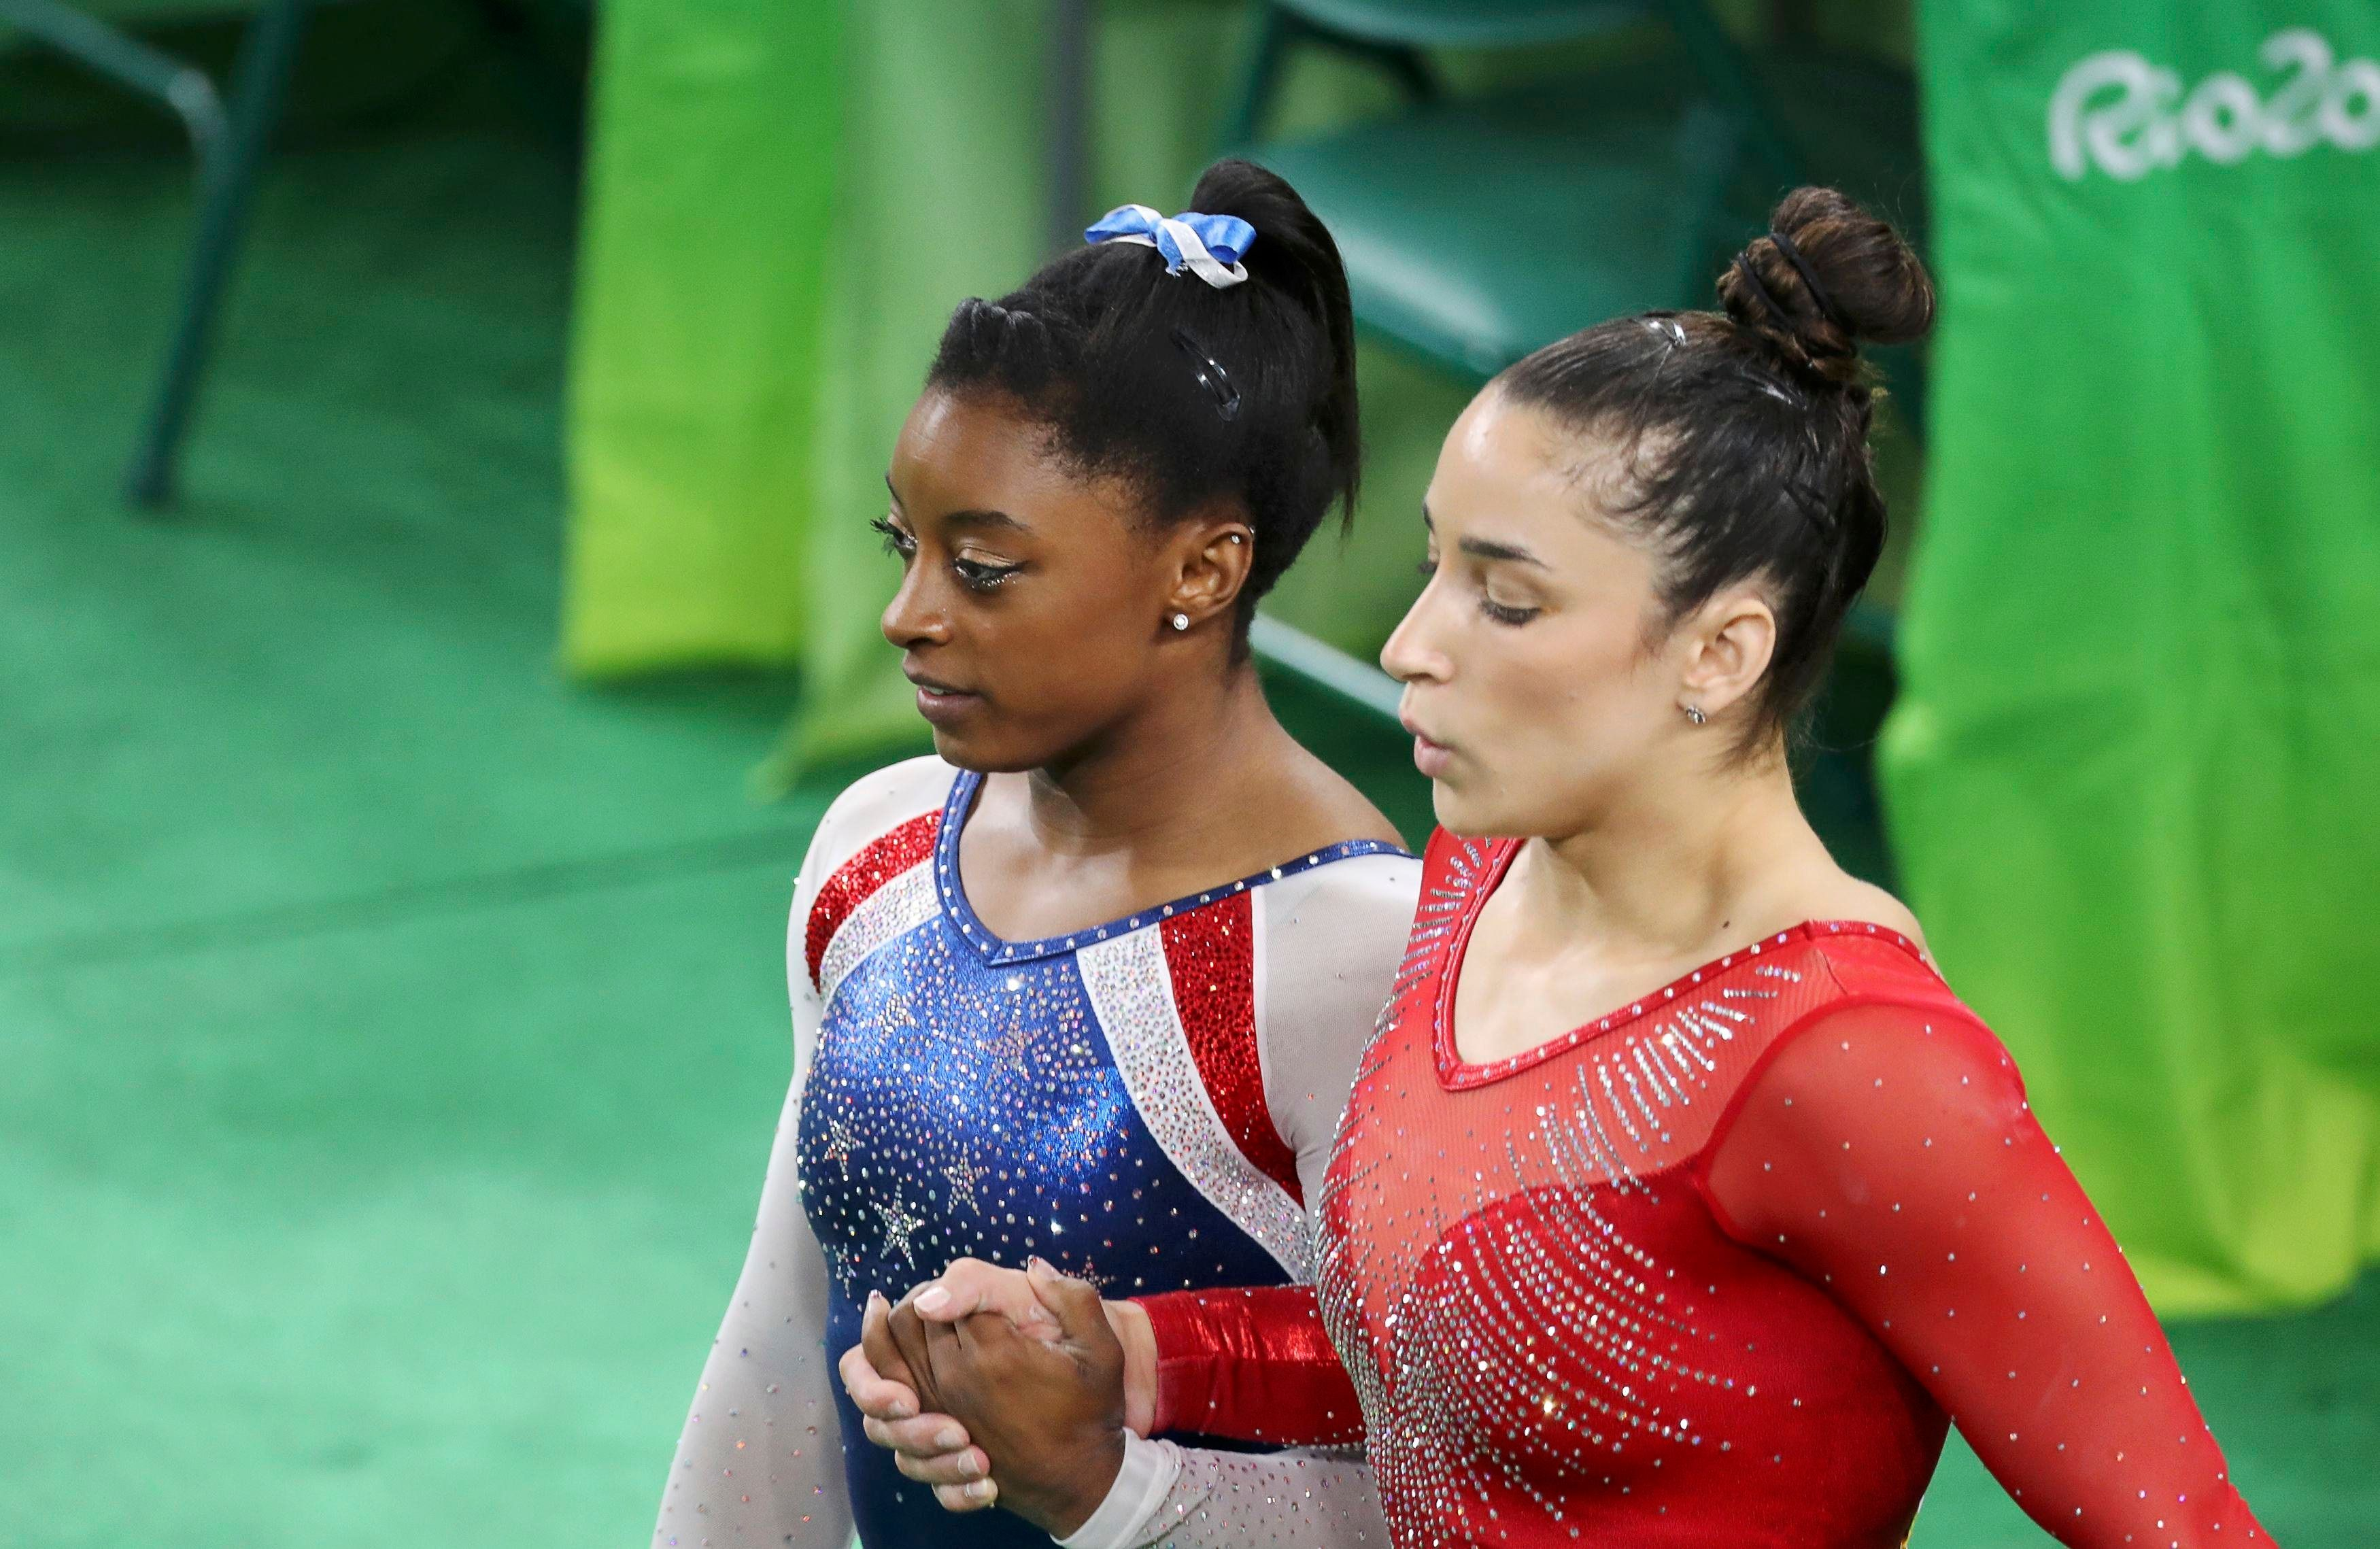 2016 Rio Olympics - Artistic Gymnastics - Final - Women's Individual All-Around Final - Rio Olympic Arena - Rio de Janeiro, Brazil - 11/08/2016. Simone Biles (USA) of USA (L) and Alexandra Raisman (USA) of USA (Aly Raisman) hold hands during the women's individual all-around final. REUTERS/Damir Sagolj FOR EDITORIAL USE ONLY. NOT FOR SALE FOR MARKETING OR ADVERTISING CAMPAIGNS